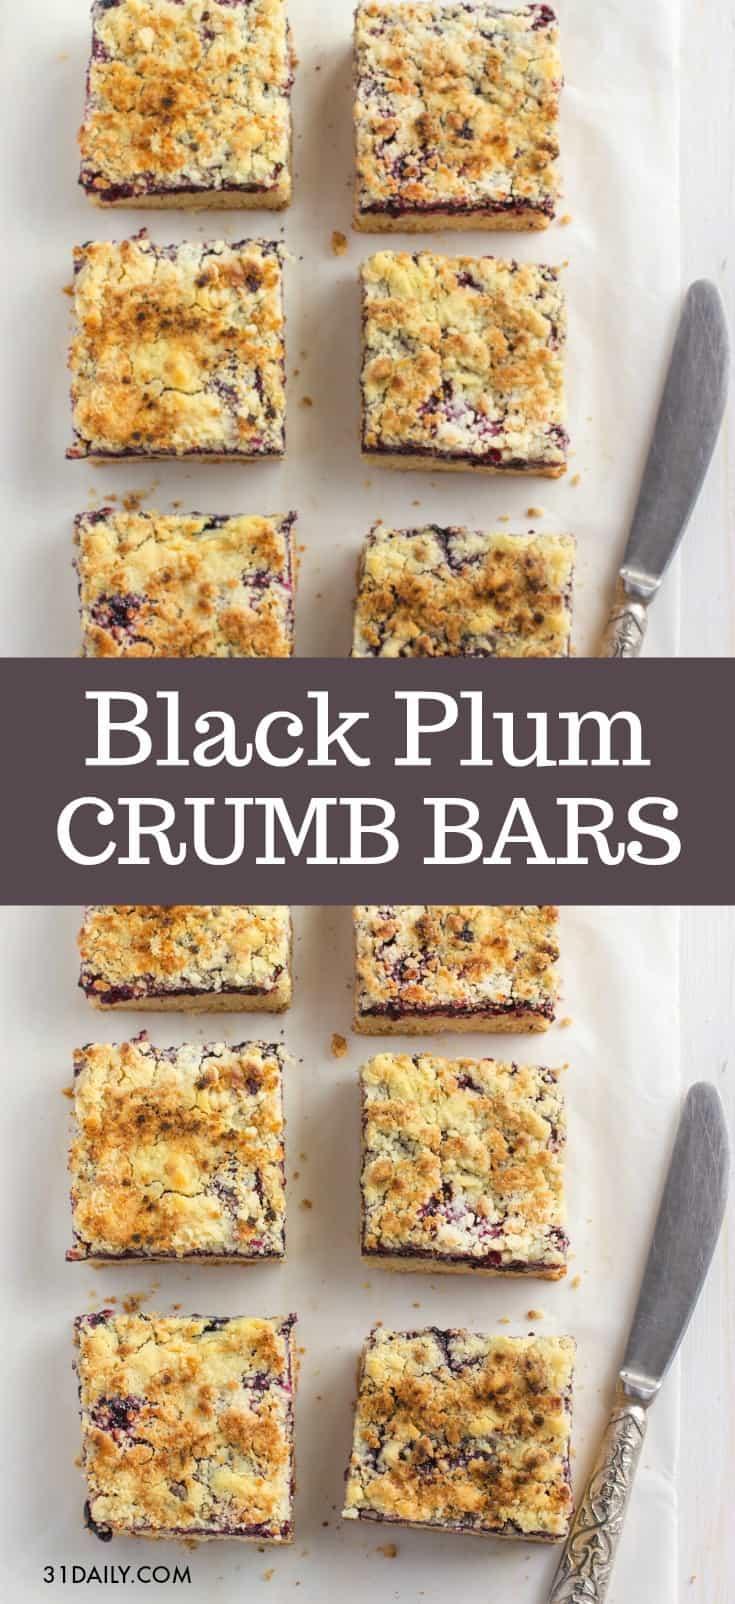 Black Plum Crumb Bars | 31Daily.com